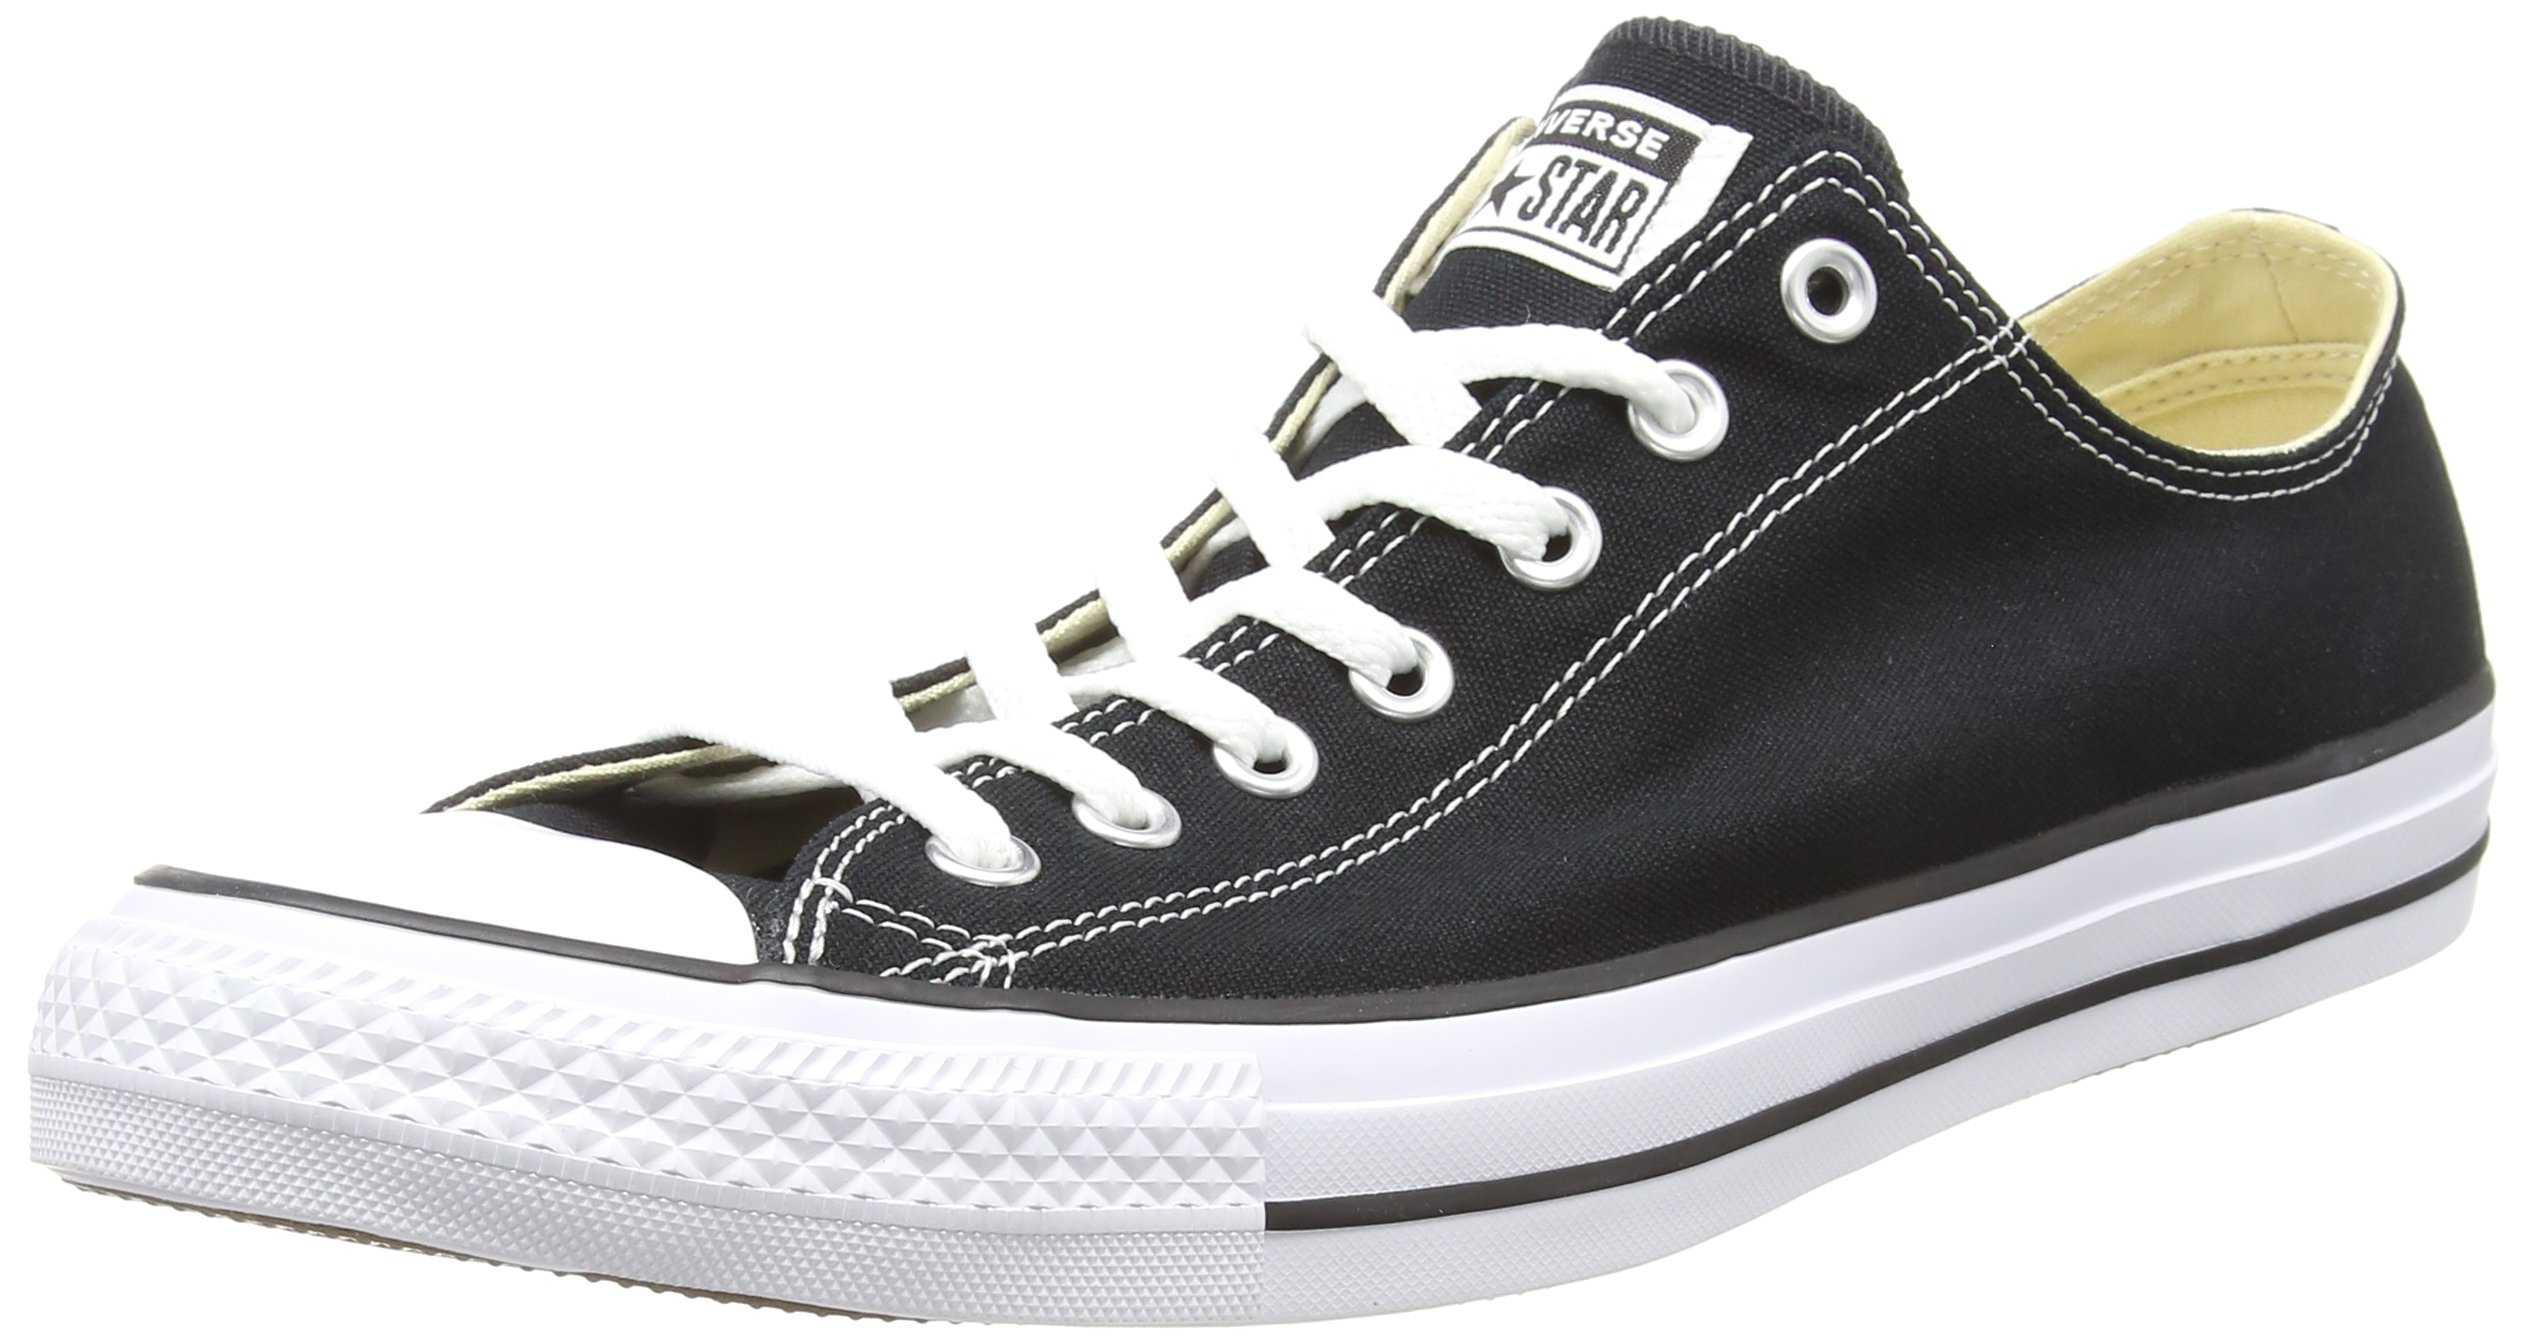 Converse Unisex Chuck Taylor All Star Ox Basketball Shoe (8.5 B(M) US Women / 6.5 D(M) US Men, Black)